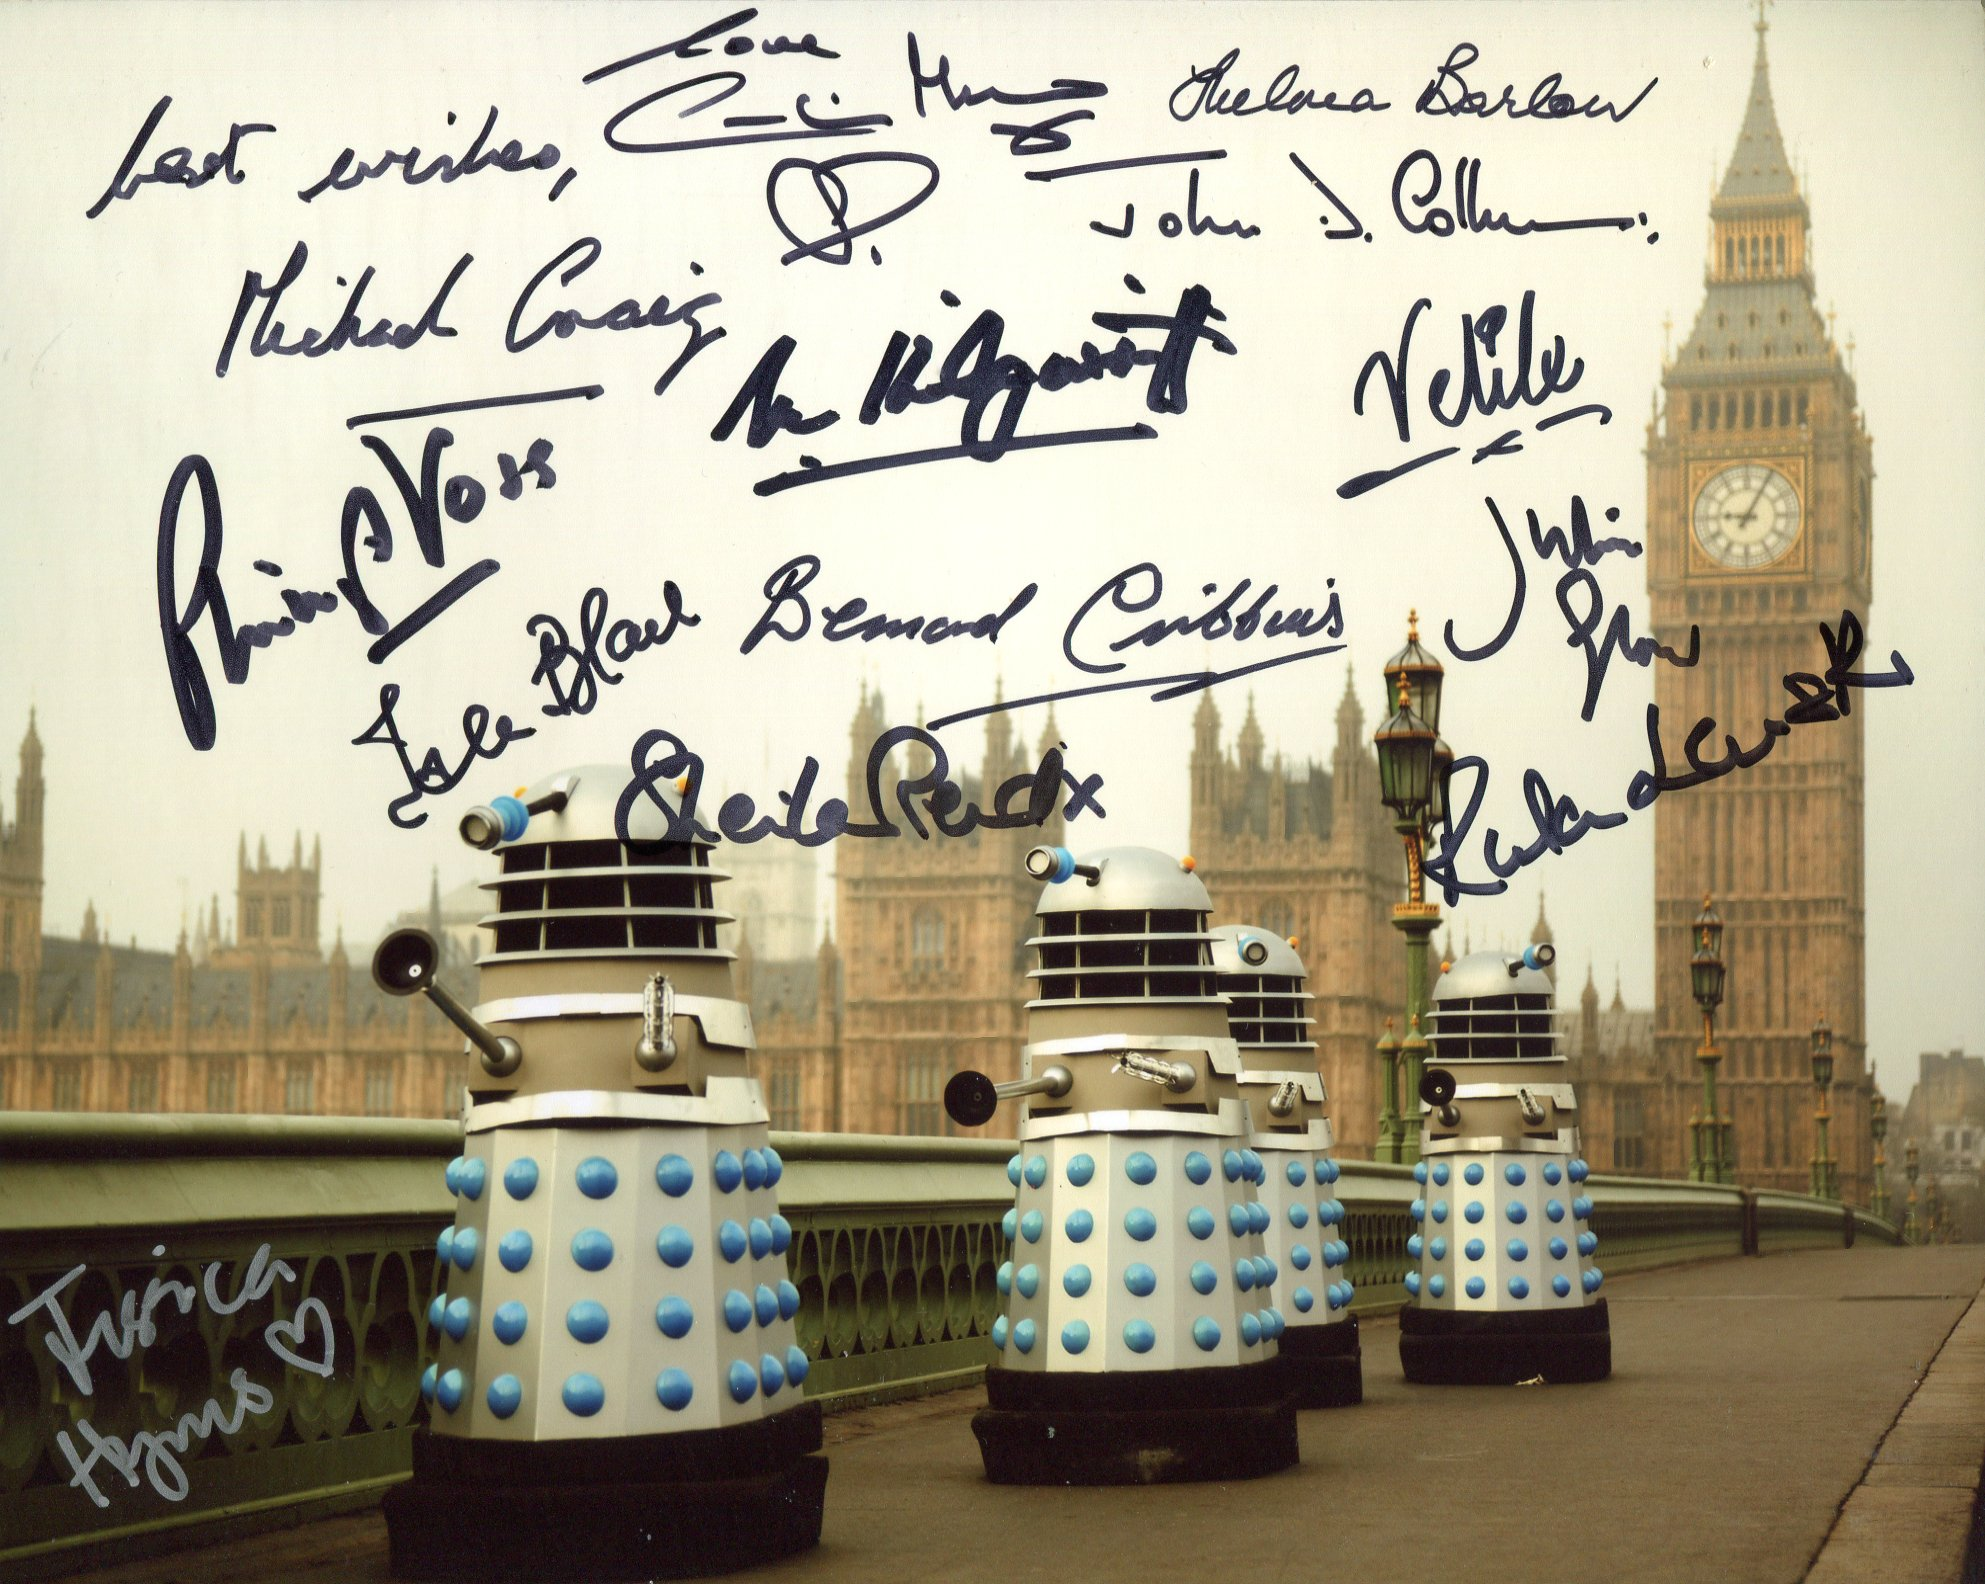 Doctor Who 8x10 Daleks in London photo signed by 13 actors who starred in the series, these are